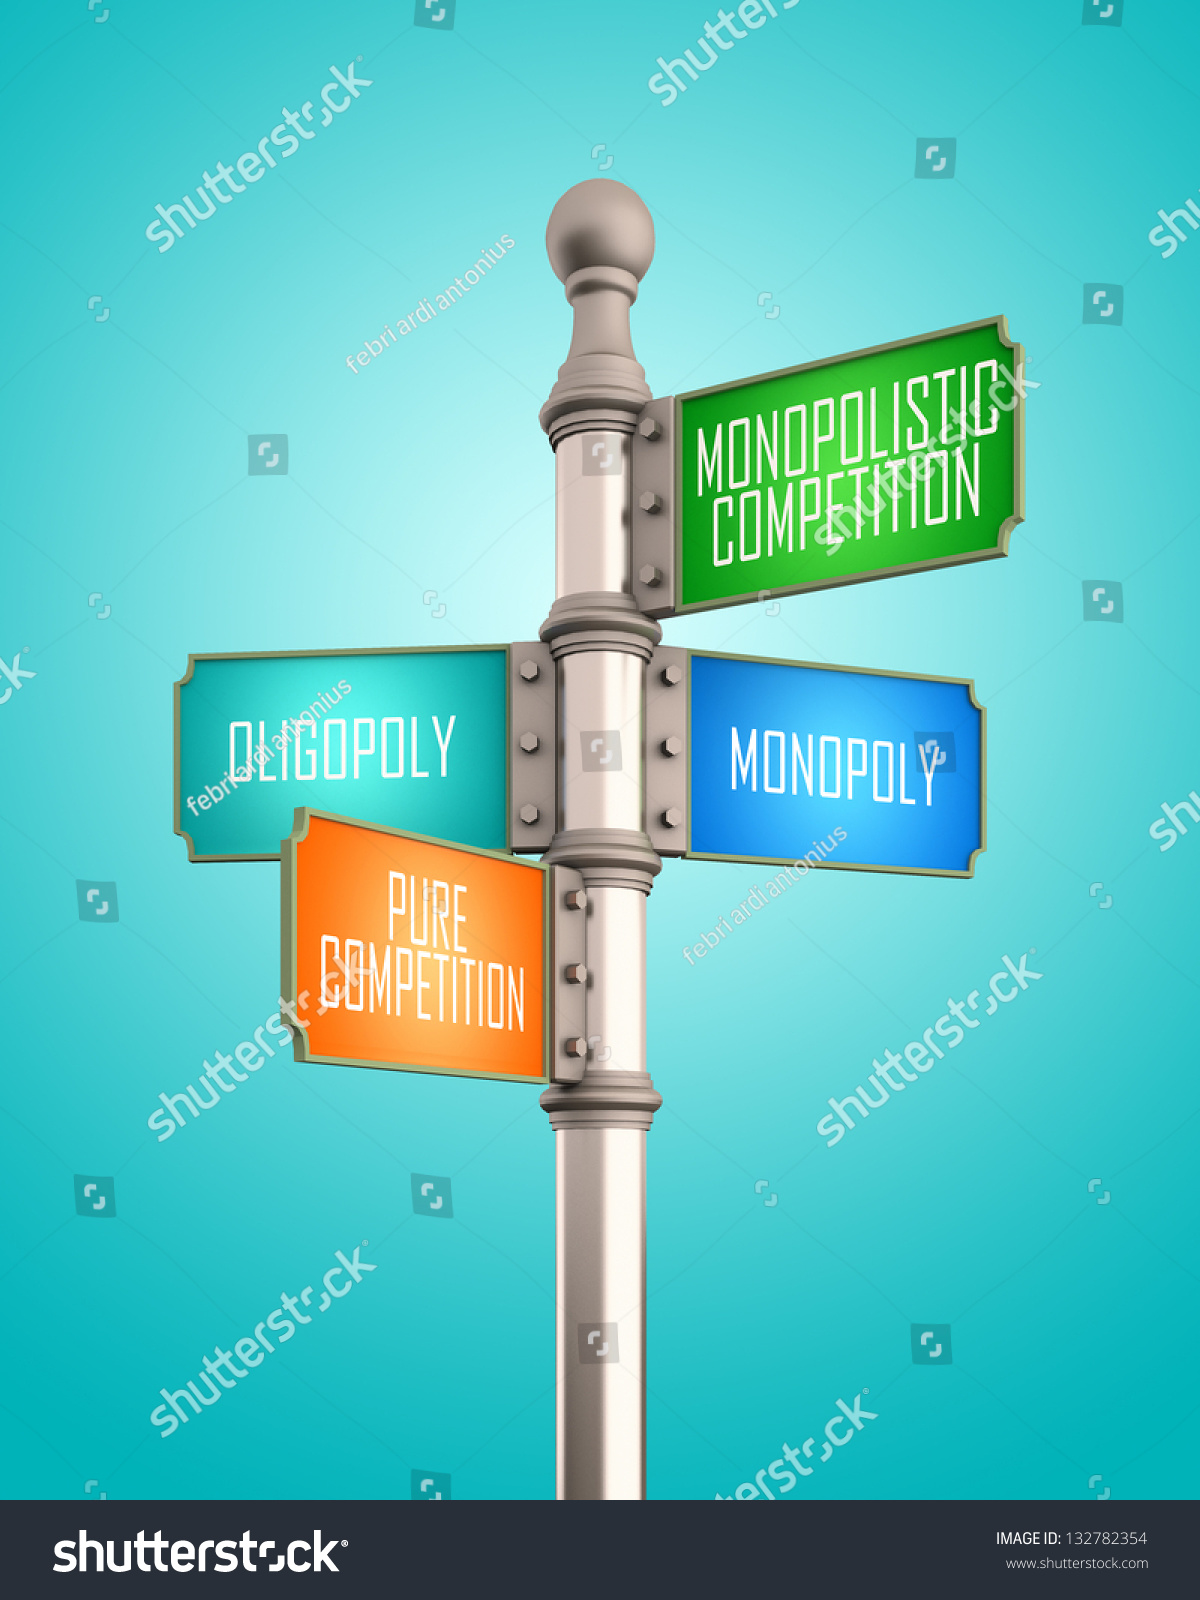 type business competition monopoly oligopoly stock illustration type of business competition monopoly oligopoly